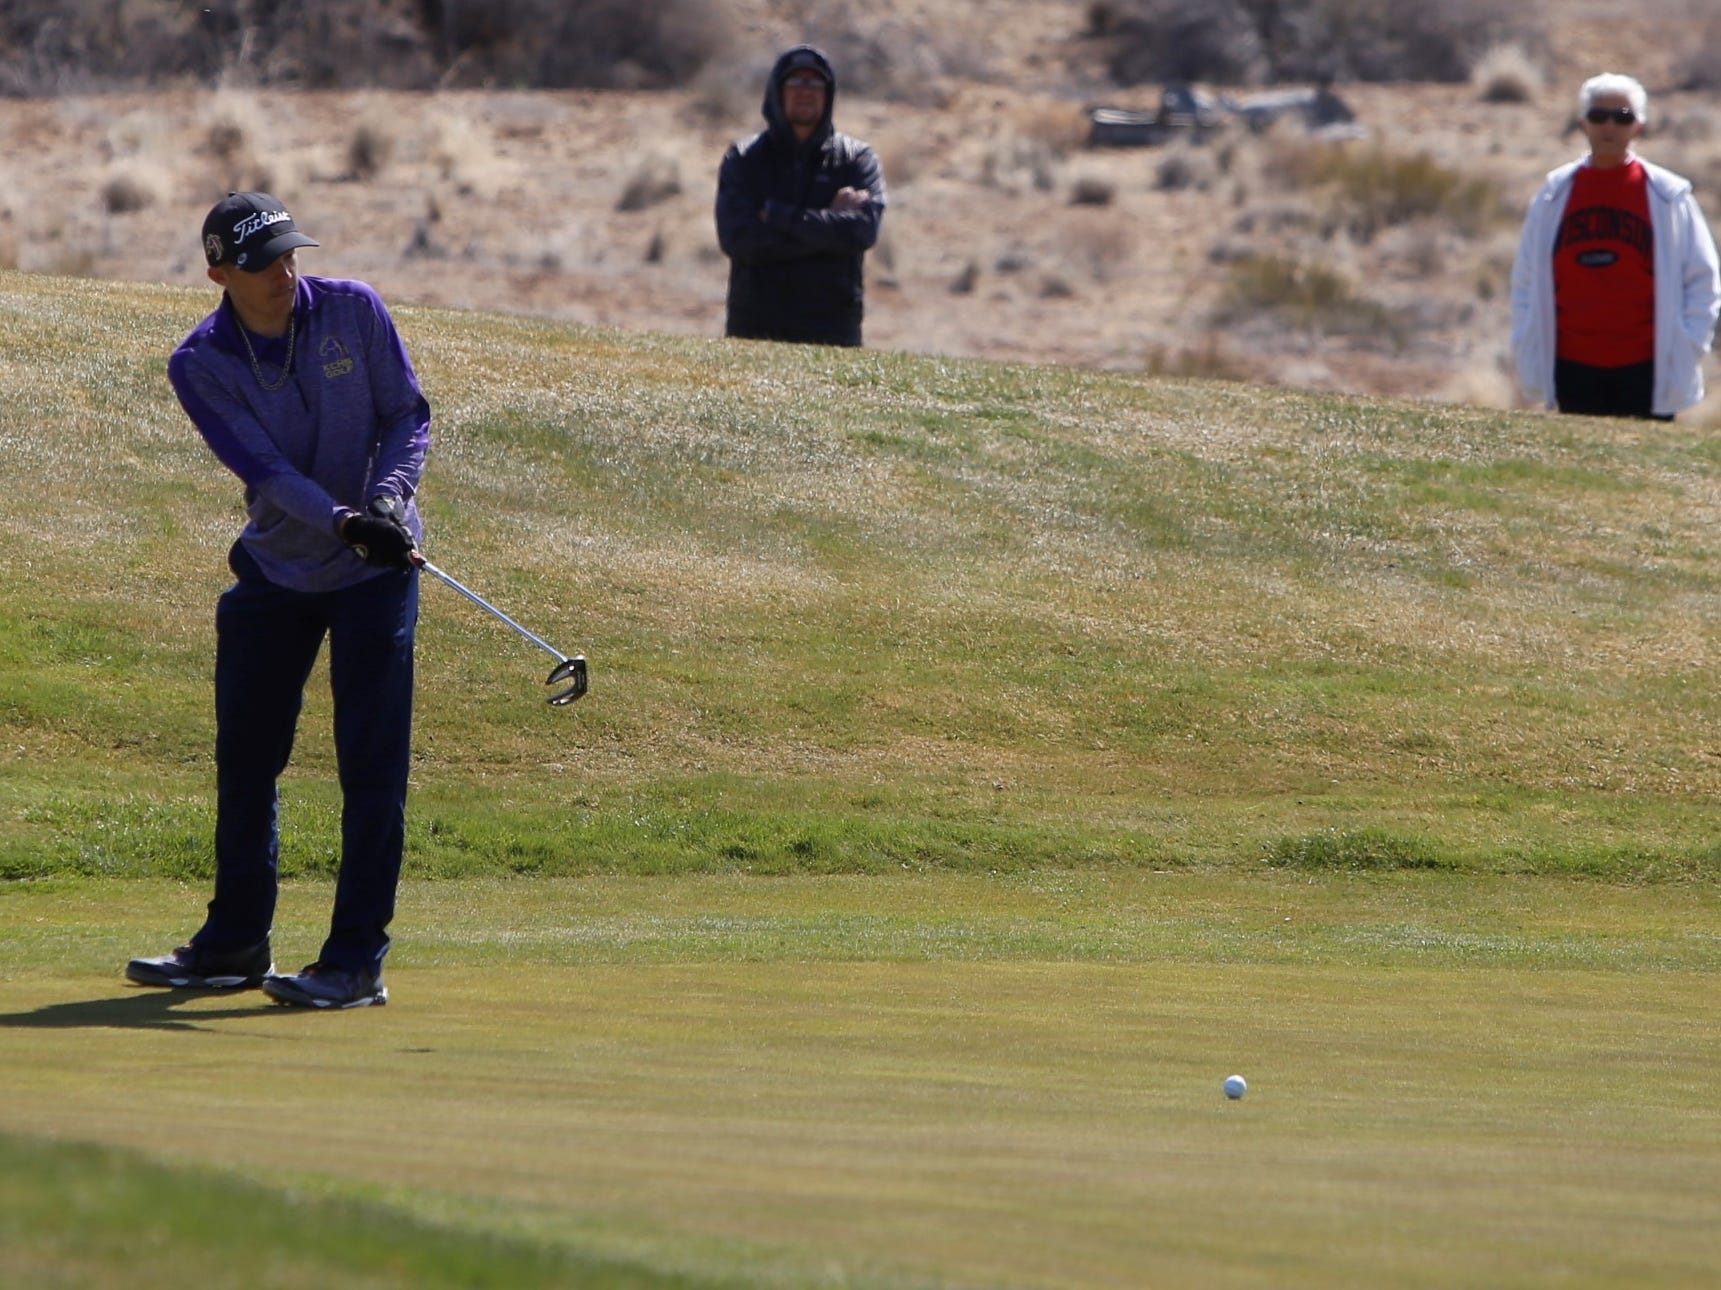 Kirtland Central's Marty Roddy attempts a long putt on the 10th green during Monday's Shiprock Invitational at Riverview Golf Course in Kirtland.